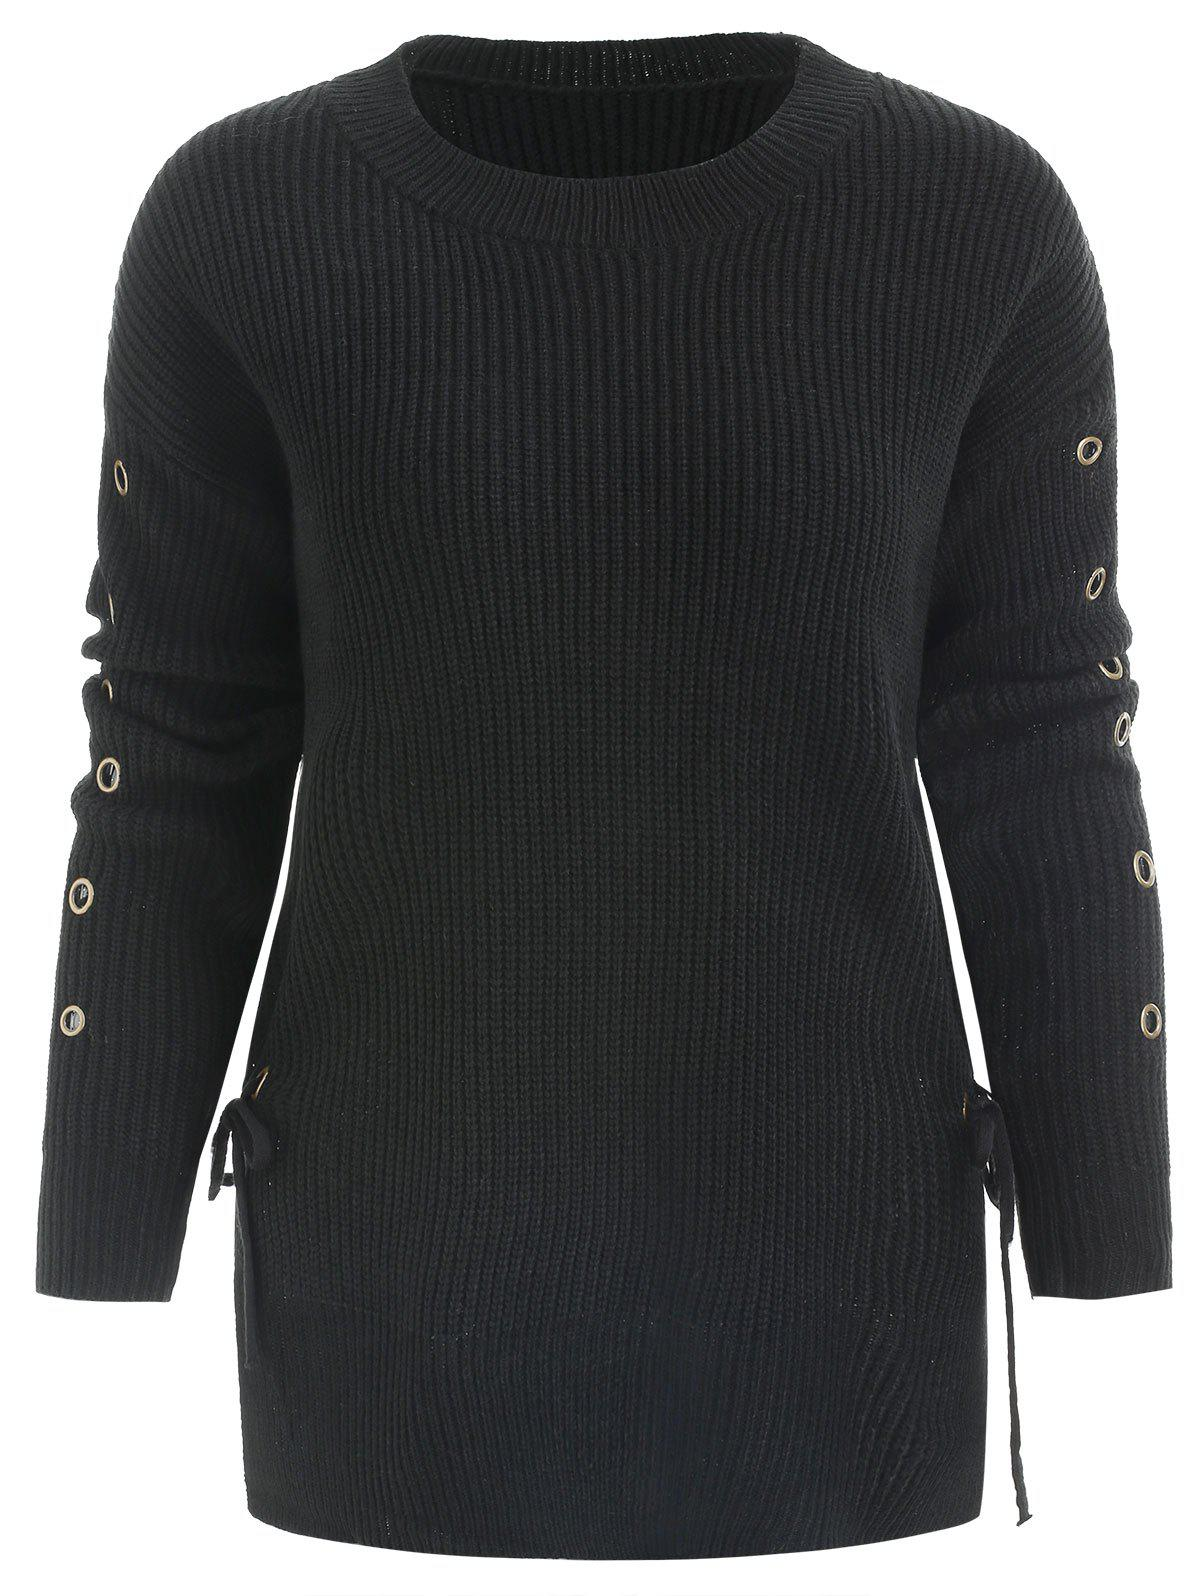 Grommet and Lace Up Embellished Sweater - BLACK ONE SIZE